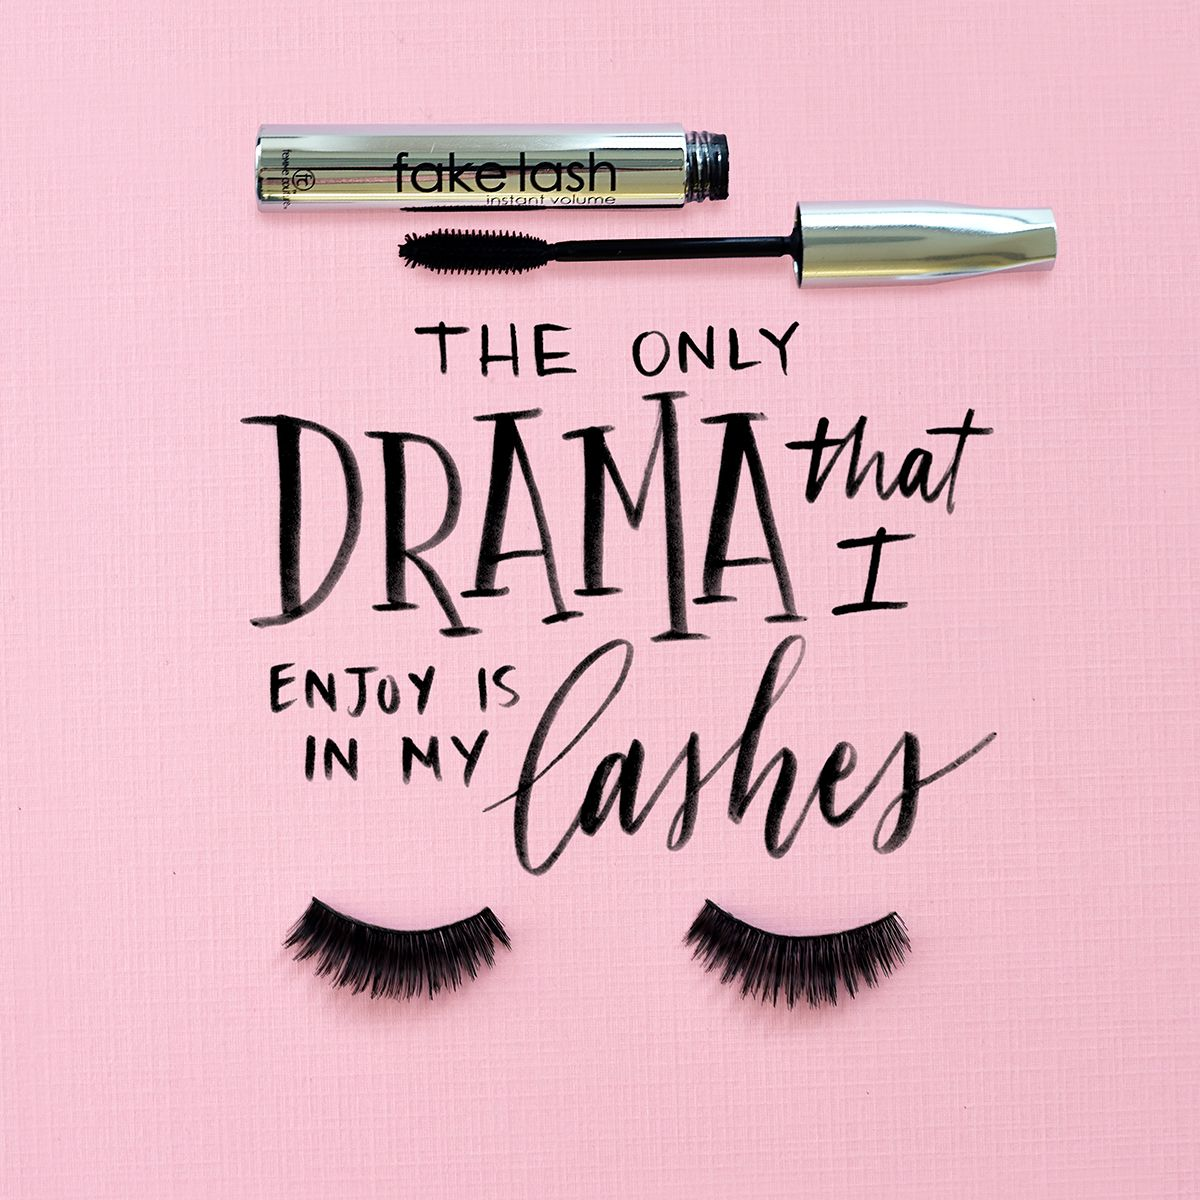 Iphone wallpaper tumblr makeup - Save The Drama For Your Lashes